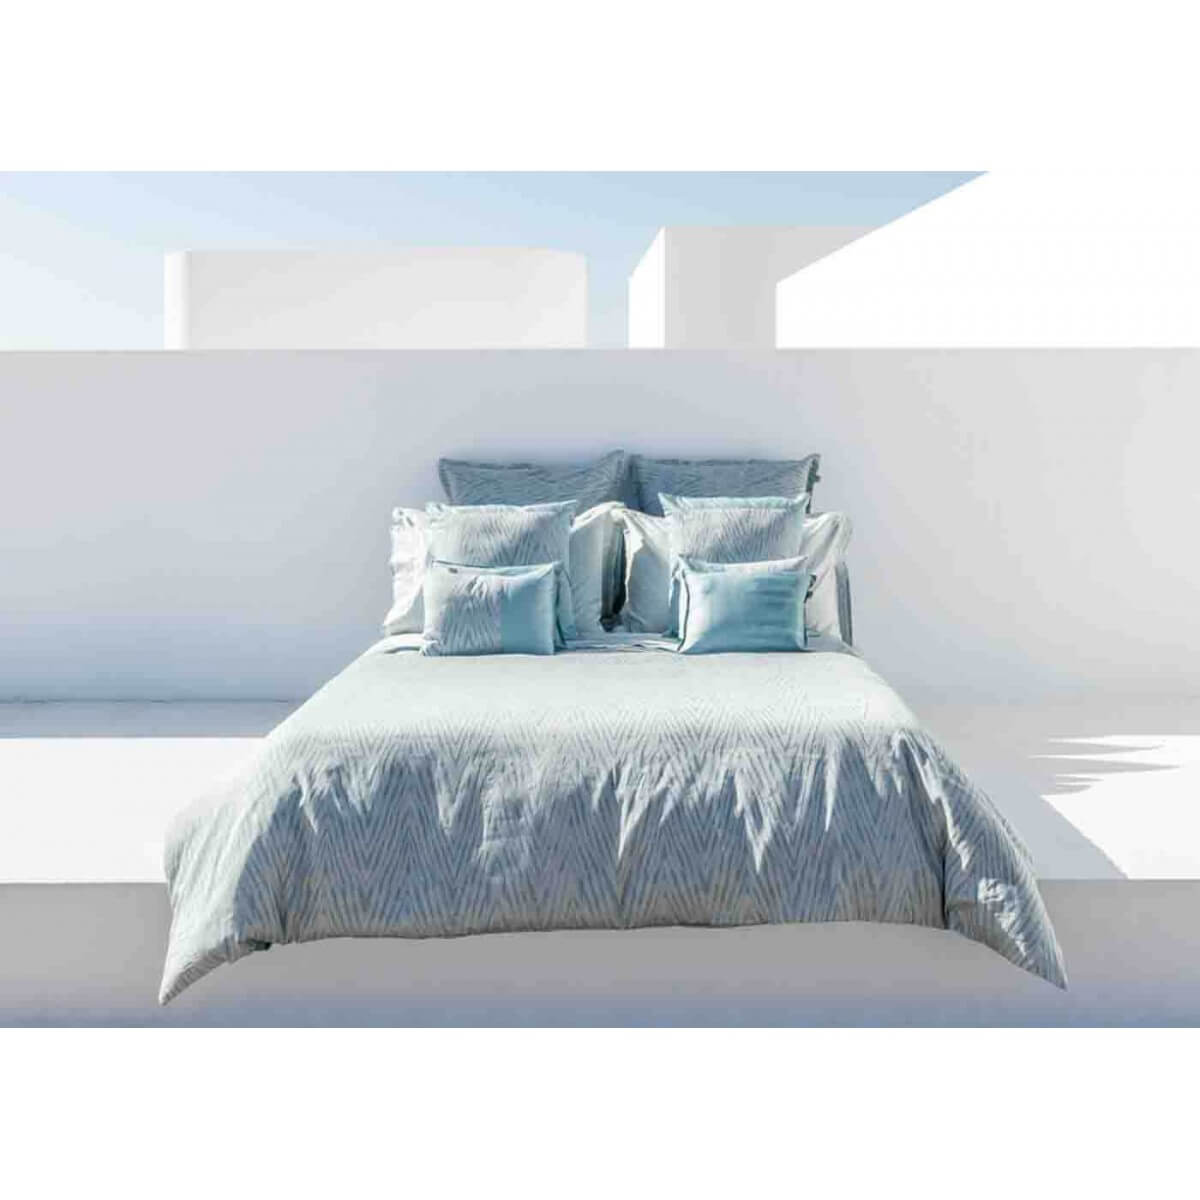 housse de couette design graphique bleu gris blue mood. Black Bedroom Furniture Sets. Home Design Ideas